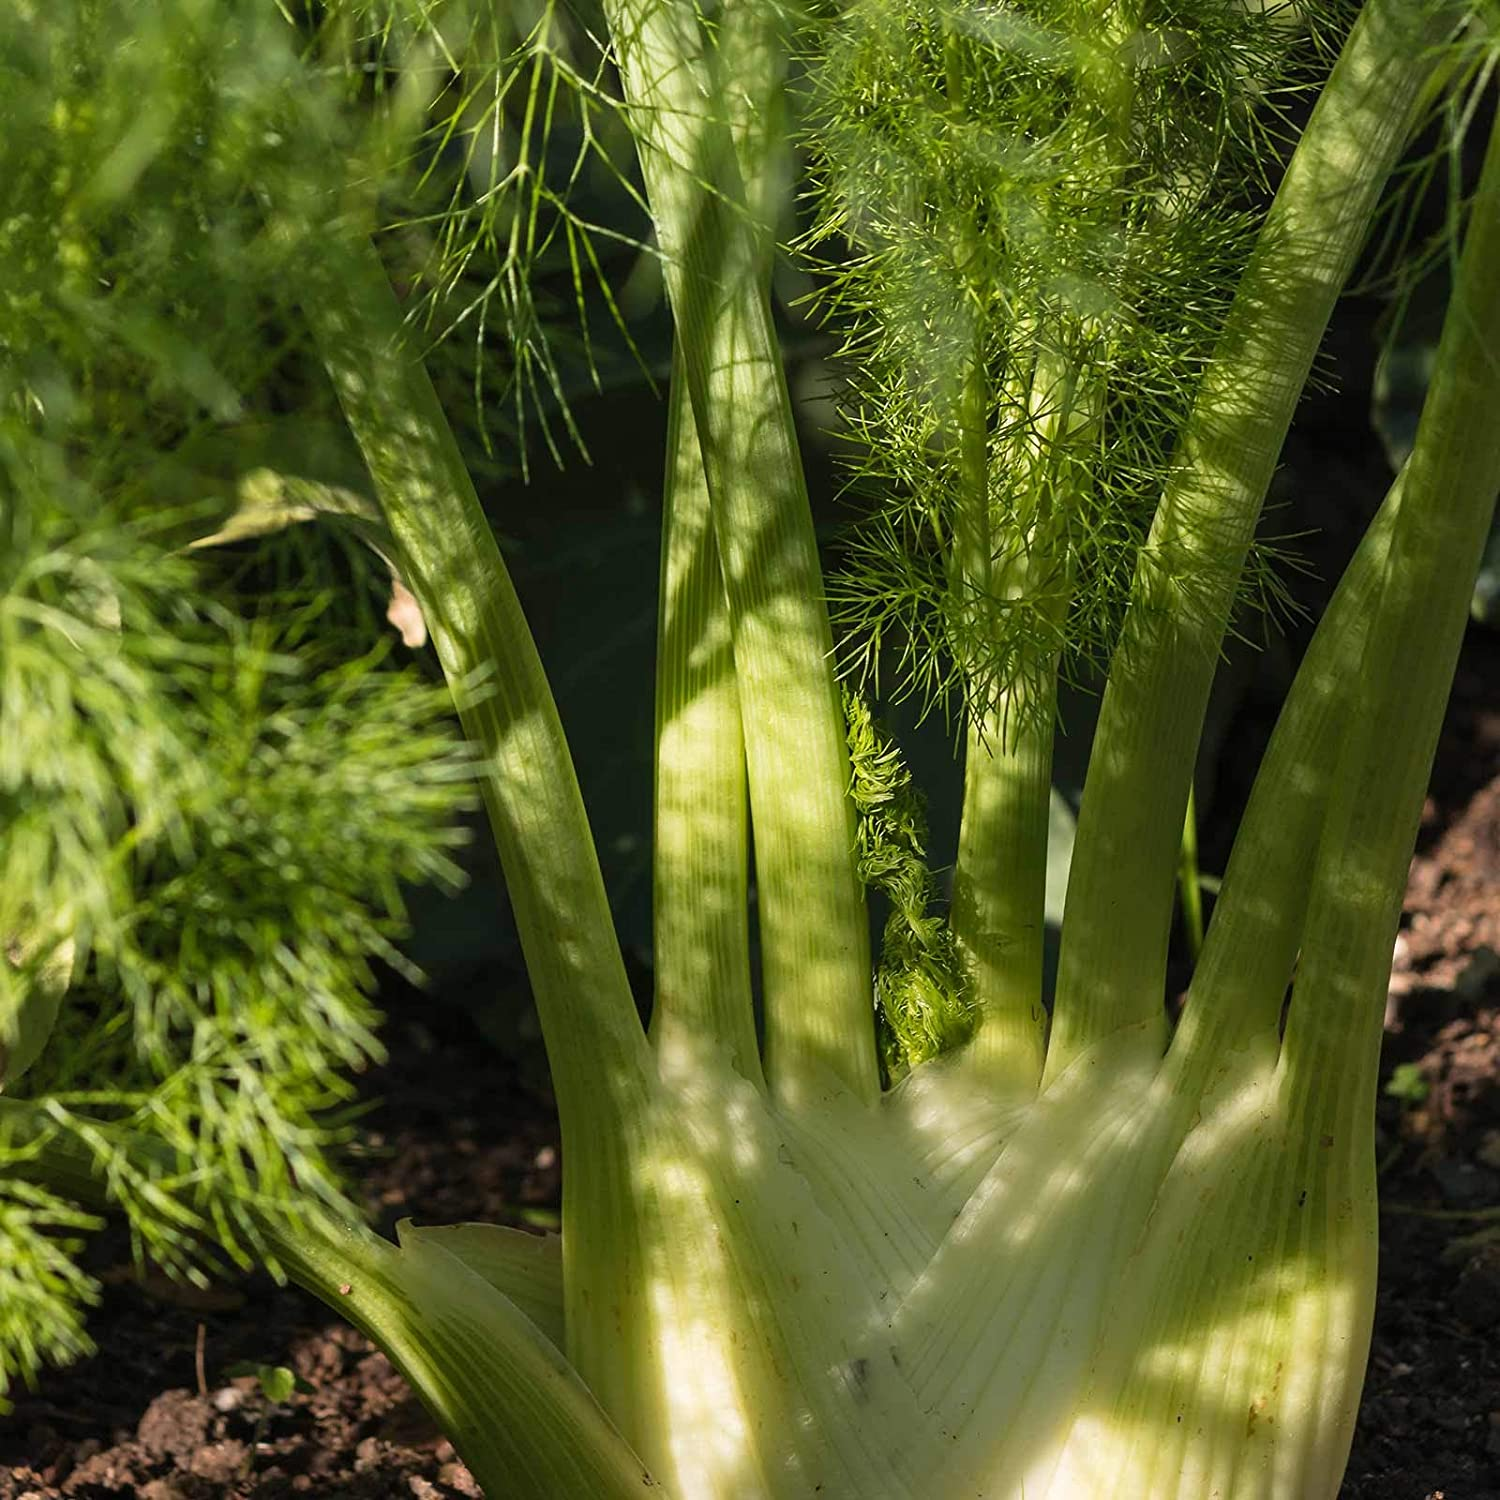 Florence Fennel - 1 g ~300 Seeds - Heirloom, Open Pollinated, Non-GMO, Culinary Herb Gardening & Micro Greens Seeds